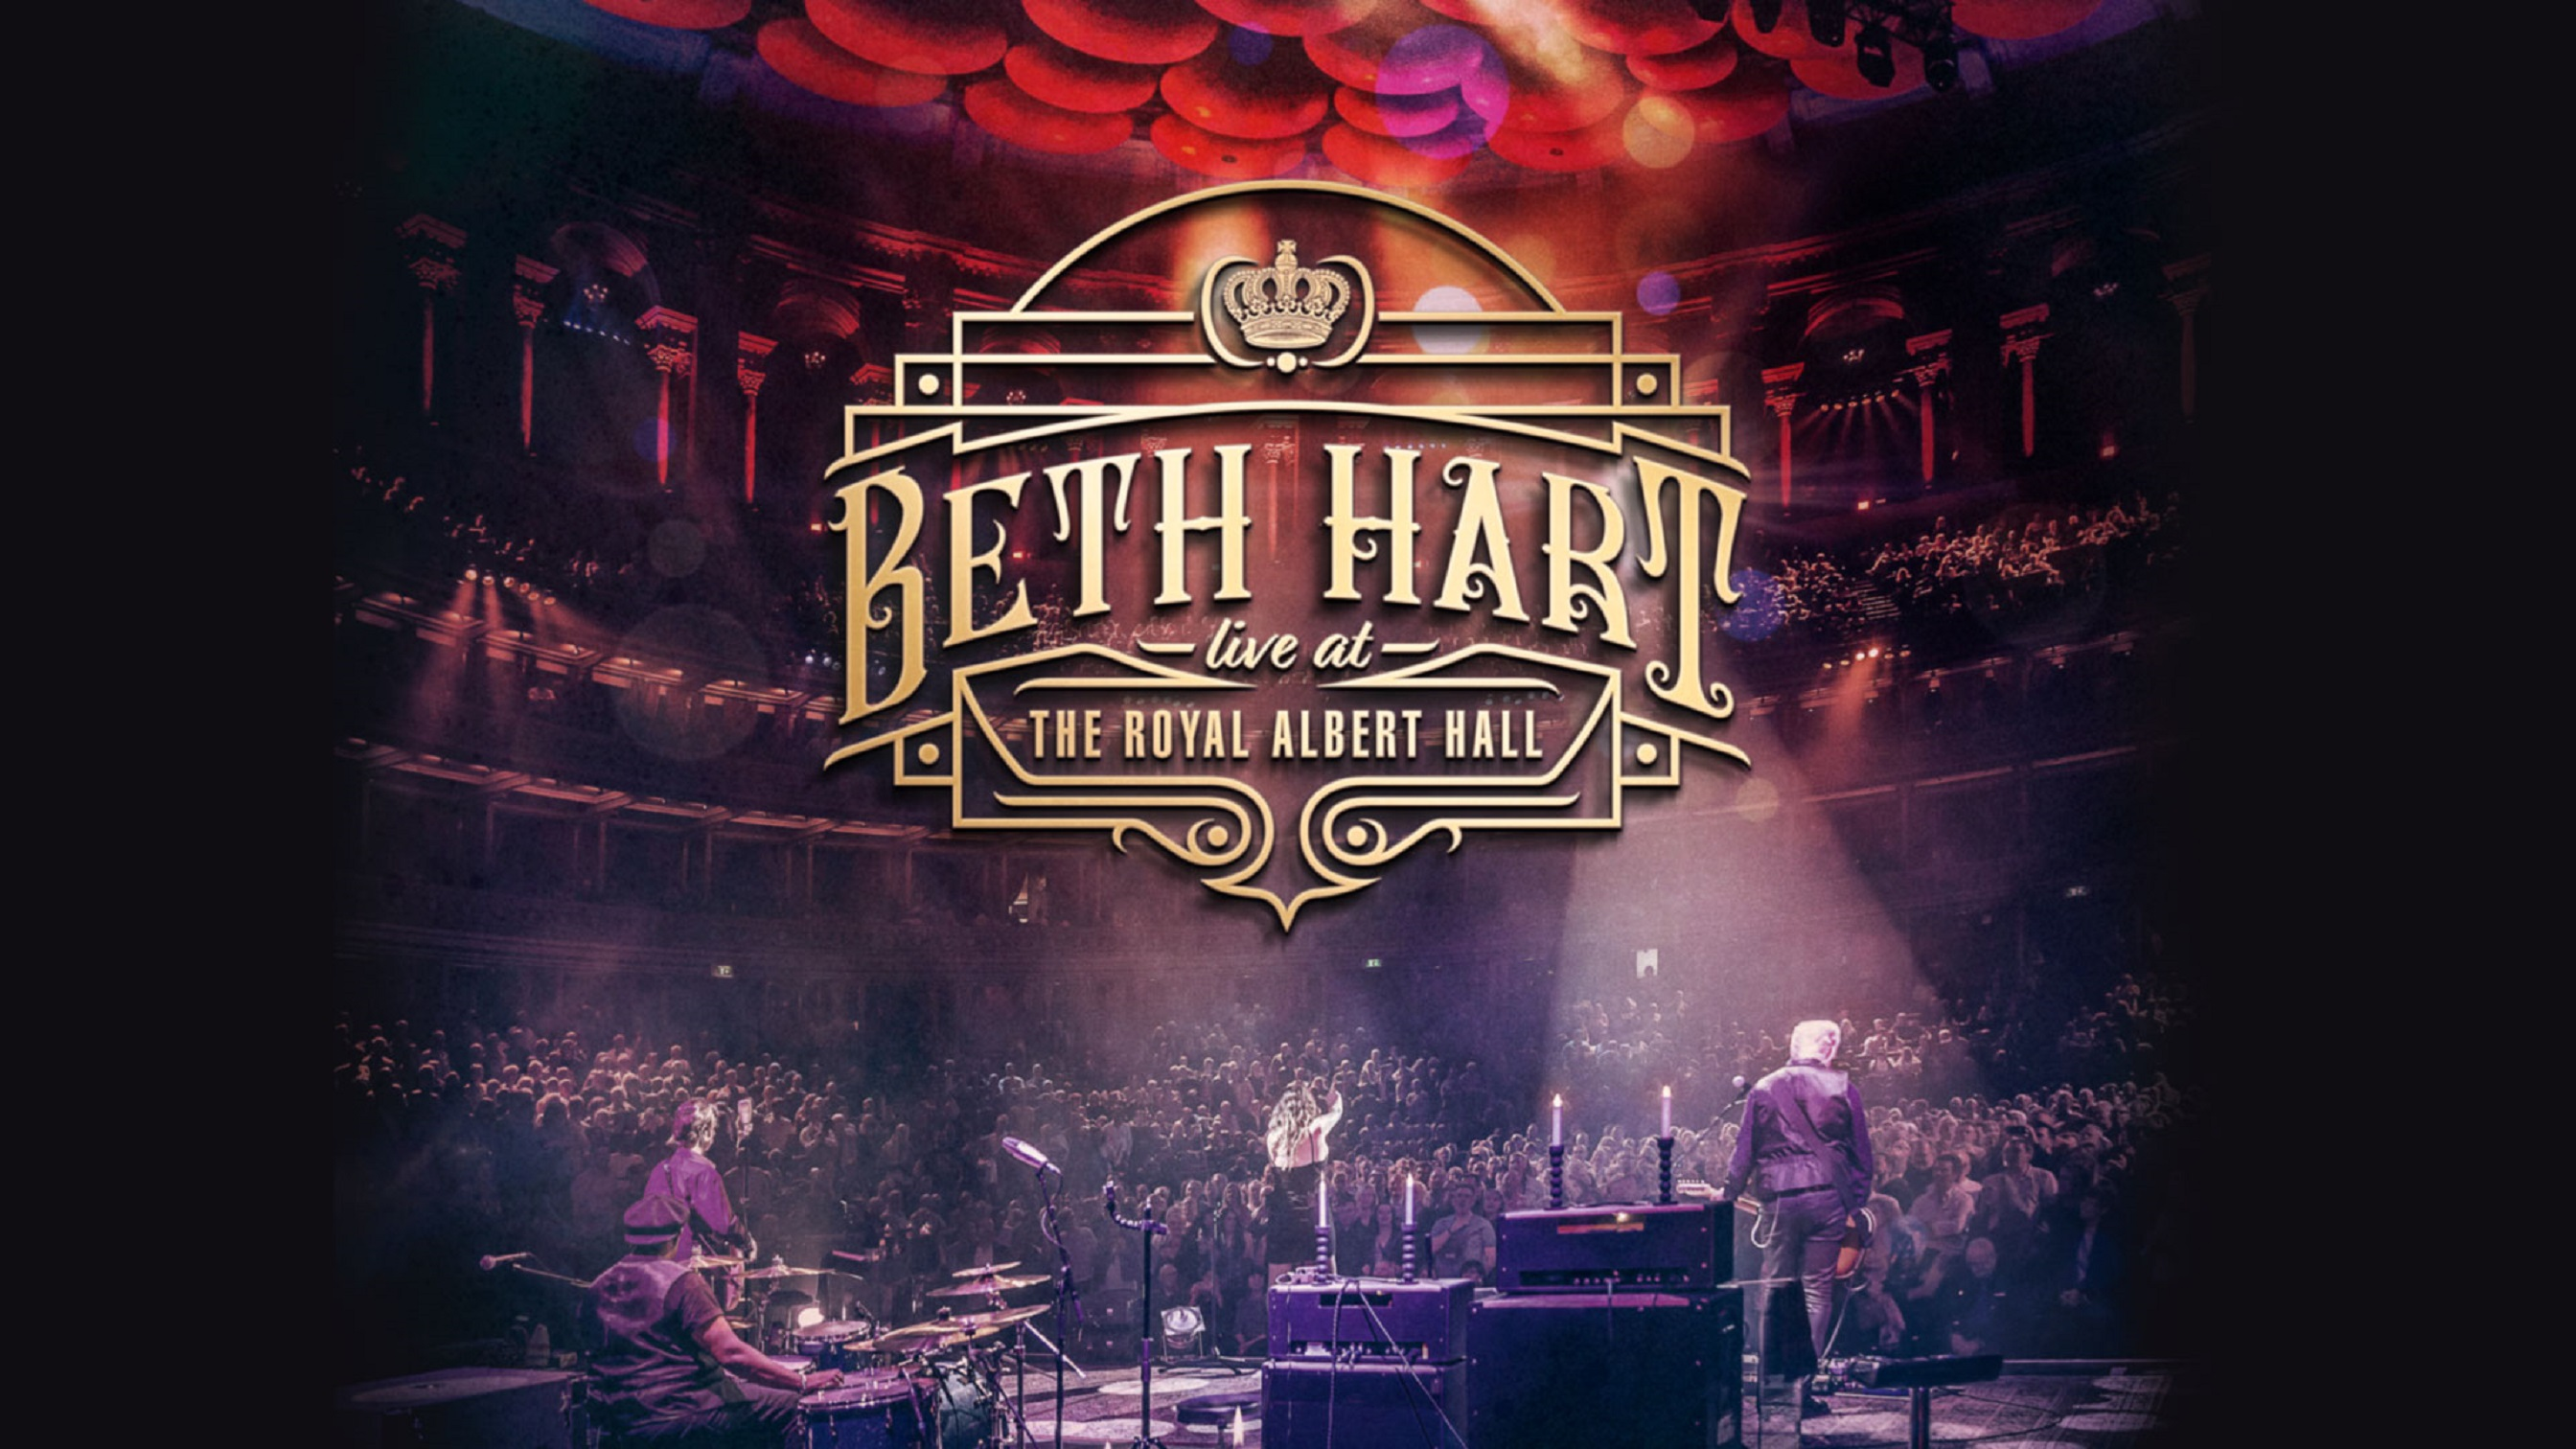 Beth Hart Announces Live Release, 'Beth Hart - Live At The Royal Albert Hall'